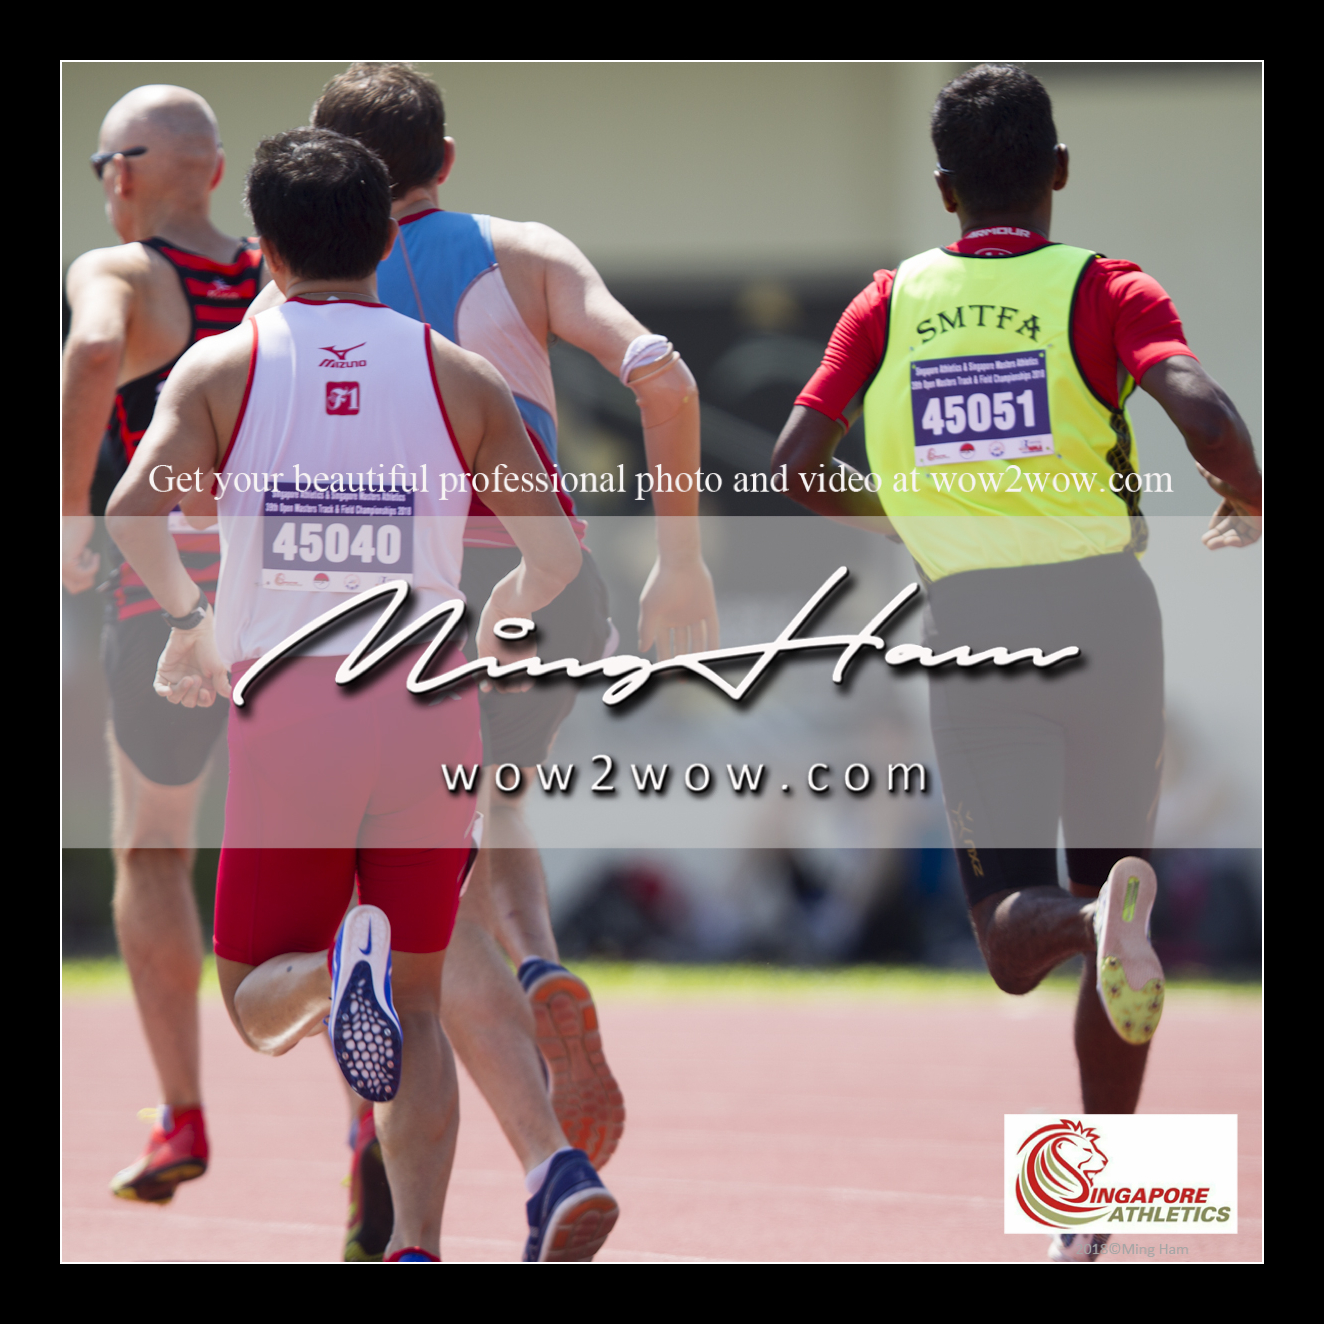 2018_Singapore Masters_0718 [Men M45 800m running back view 45051 SMTFA and 45040 F1 Koh Leong]